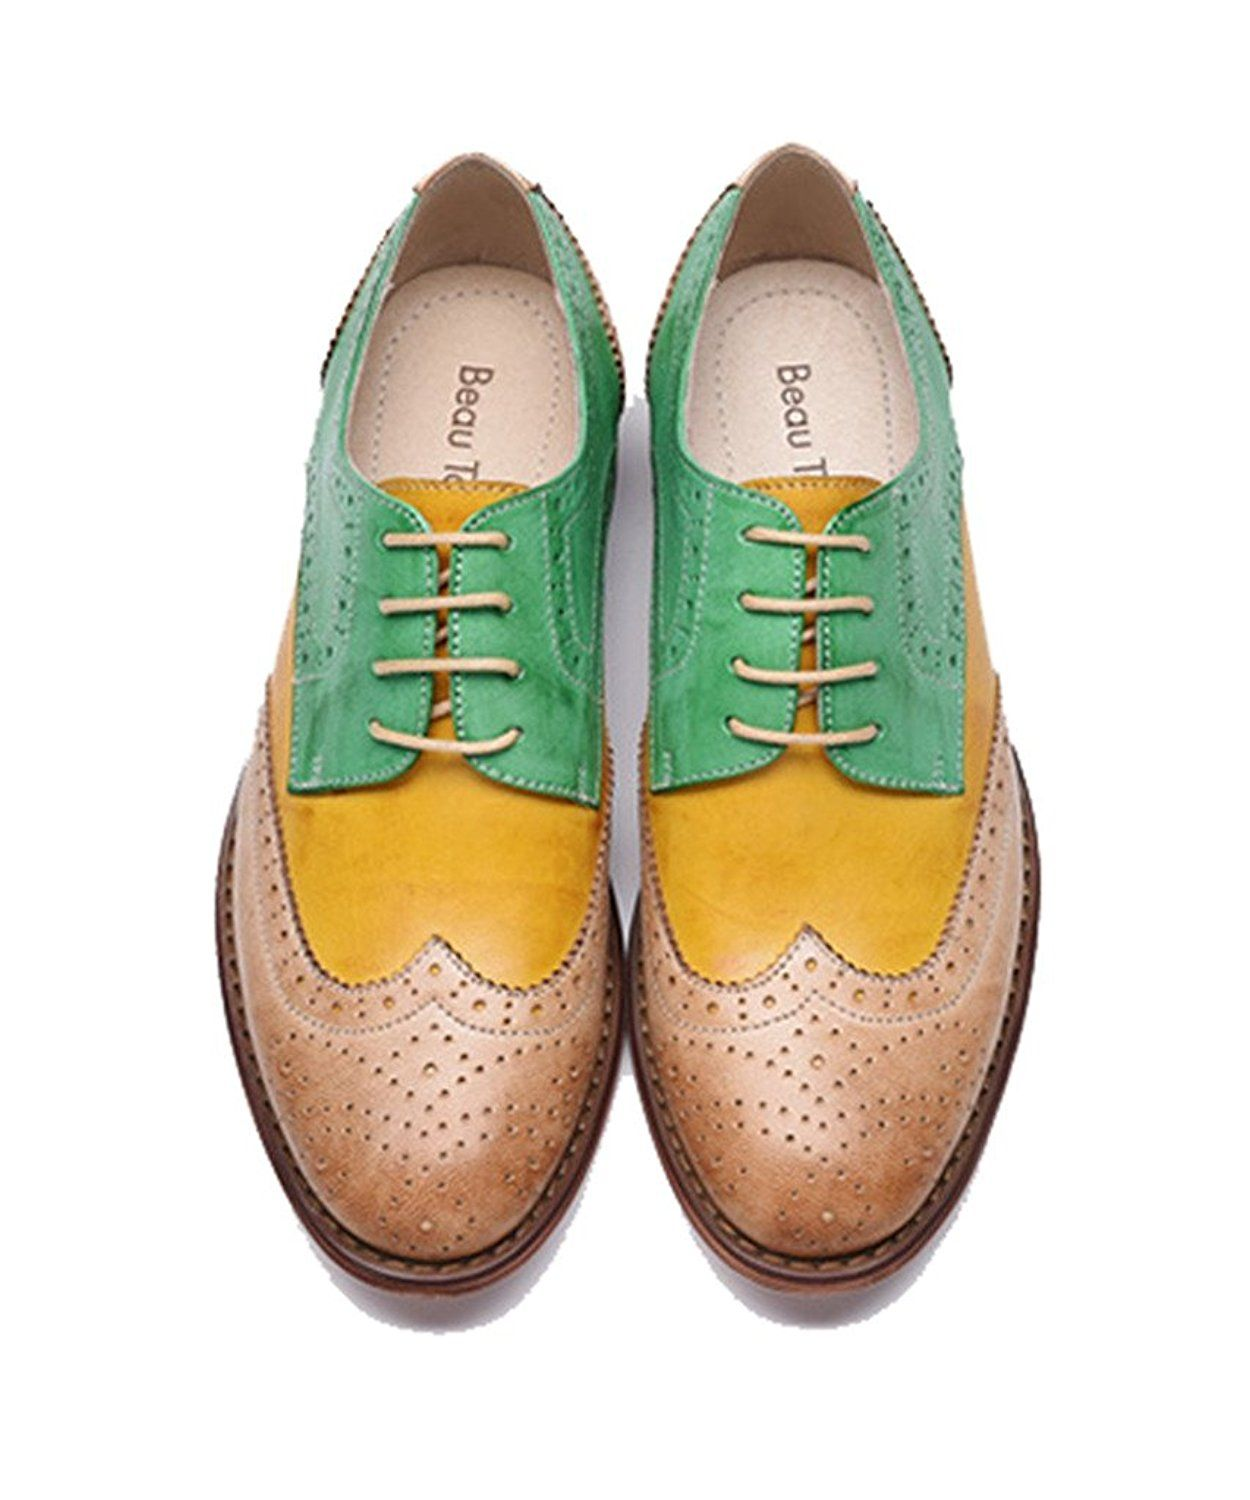 1069d21c8b U-lite Green Yellow Perforated Brogue Wingtip Leather Flat Oxfords Vintage oxford  shoes Women GY 5.5